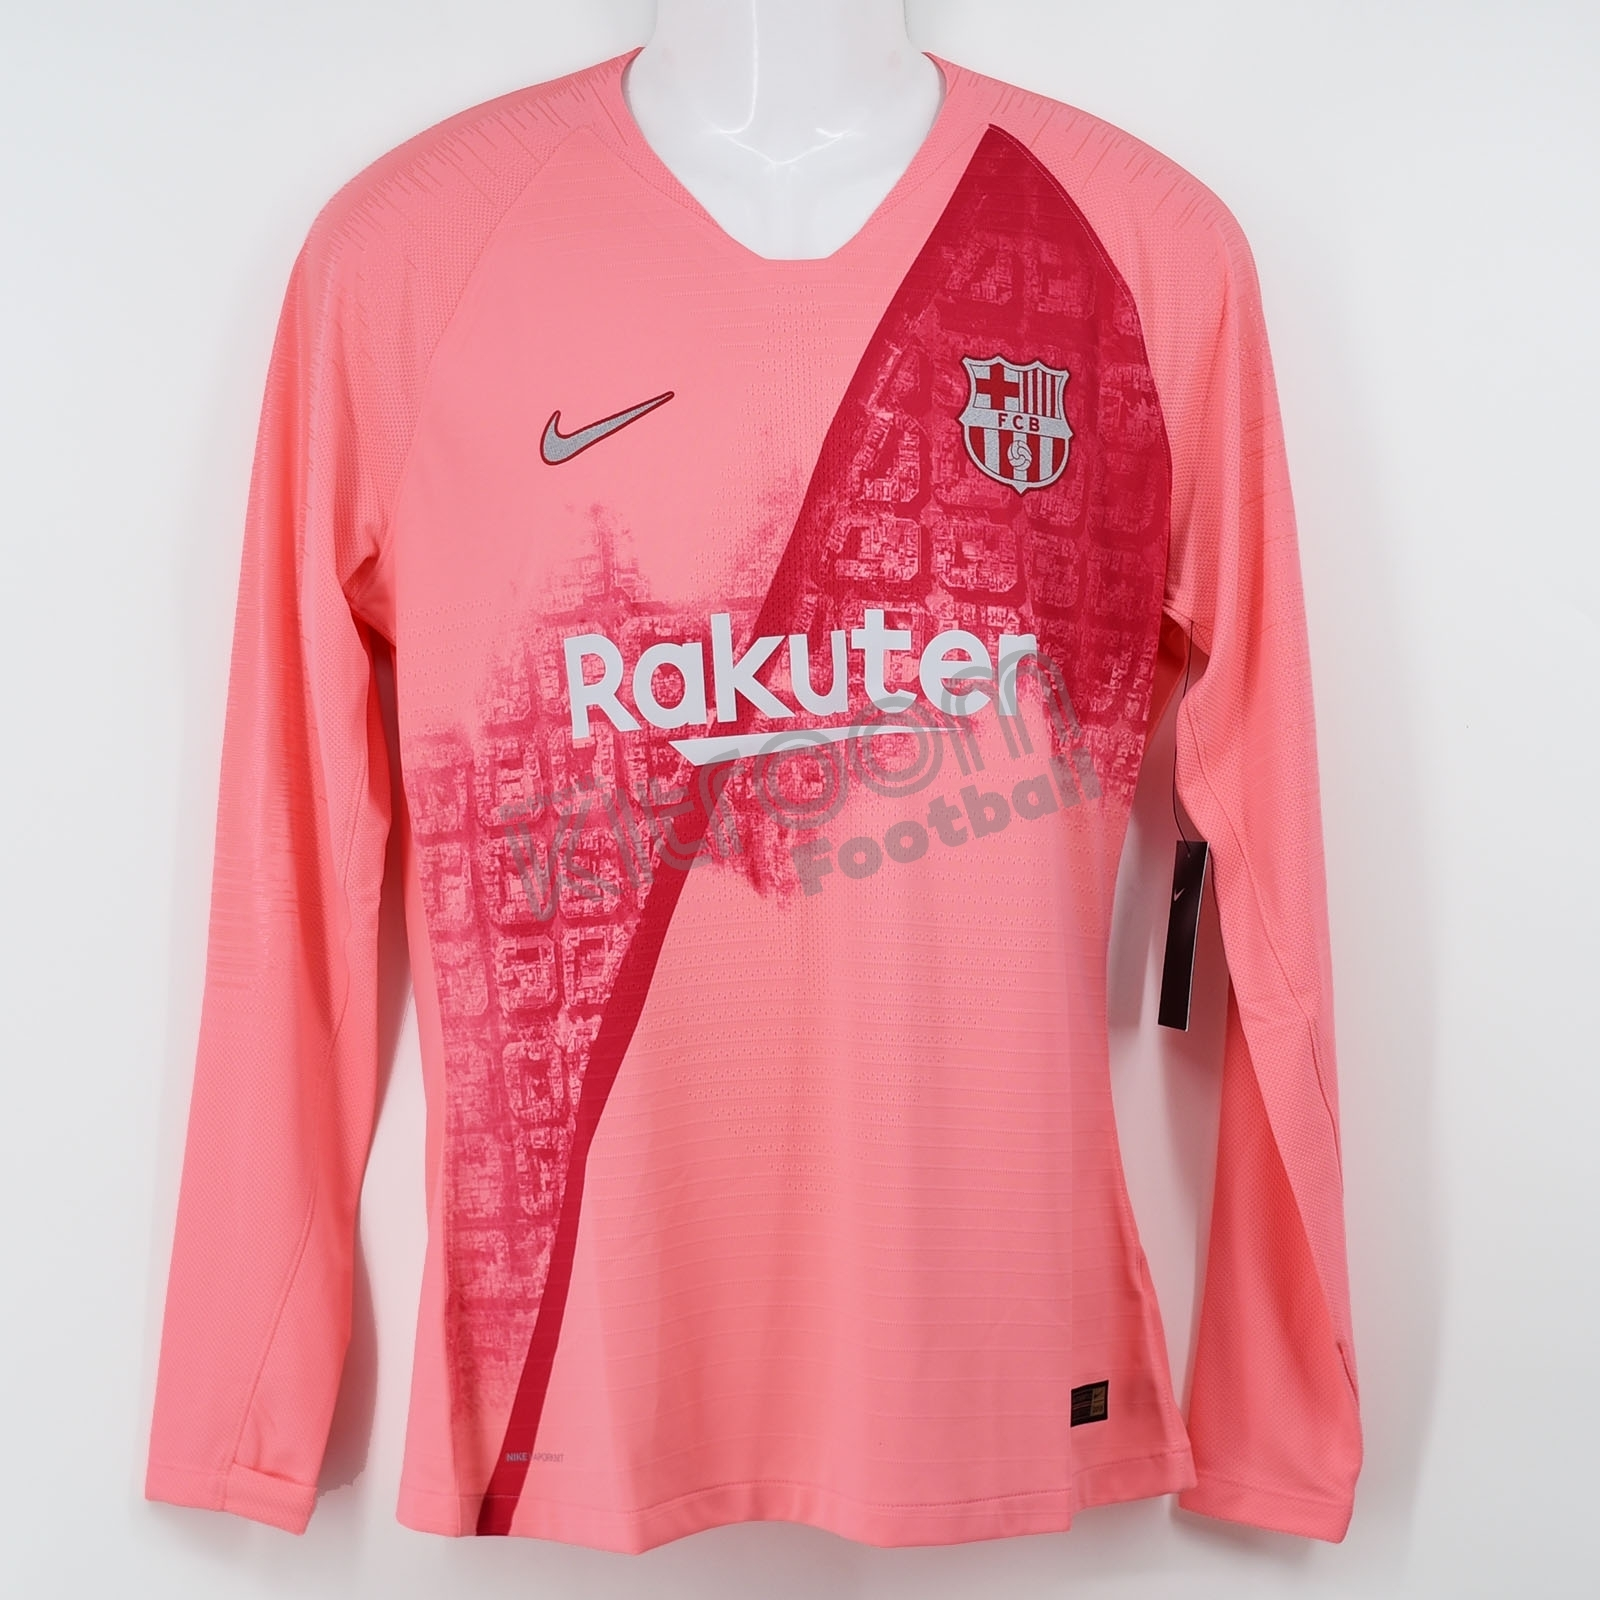 huge discount 13642 ad8dc Details about 2018-19 Barcelona Player Issue Third L/S Shirt Vaporknit Nike  *BNWT* L Jersey